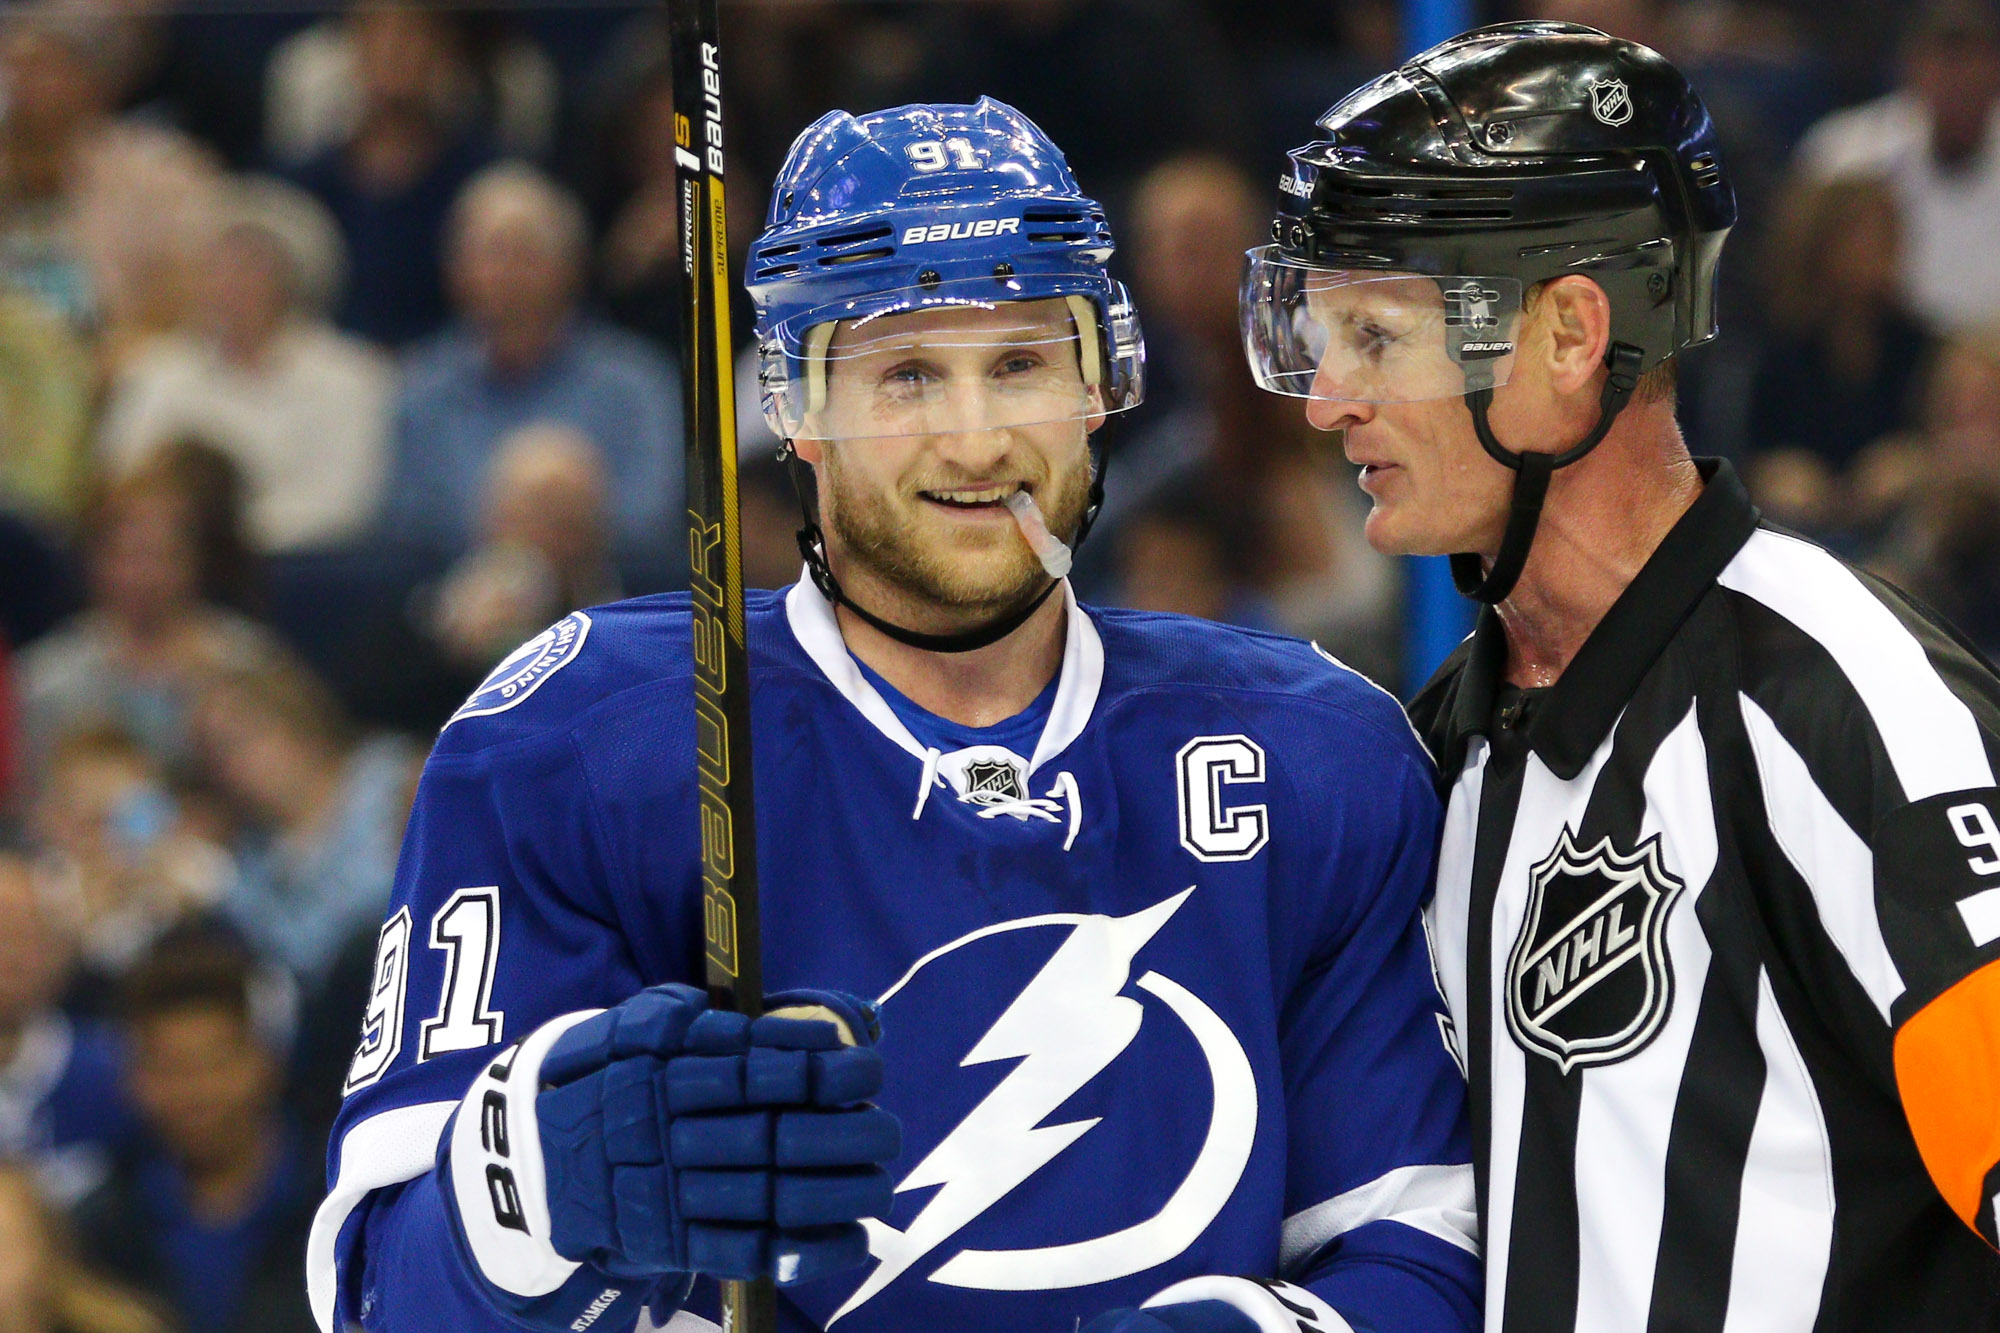 Steven Stamkos was the prized free agent on the market.